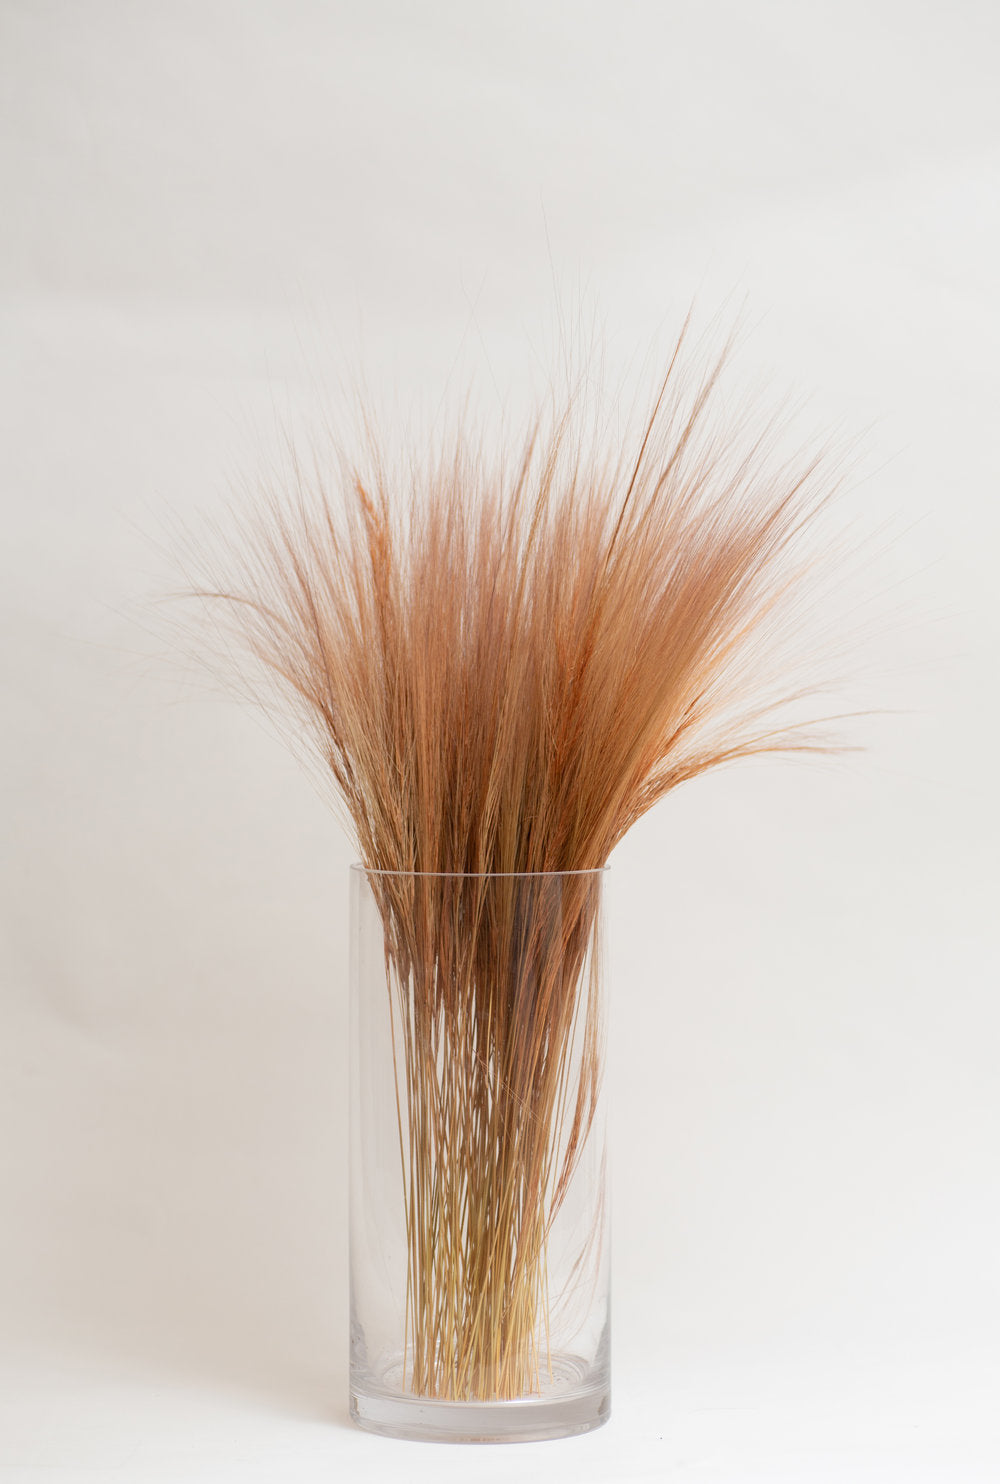 Dried Rainbow Rust Grass in Glass Vase